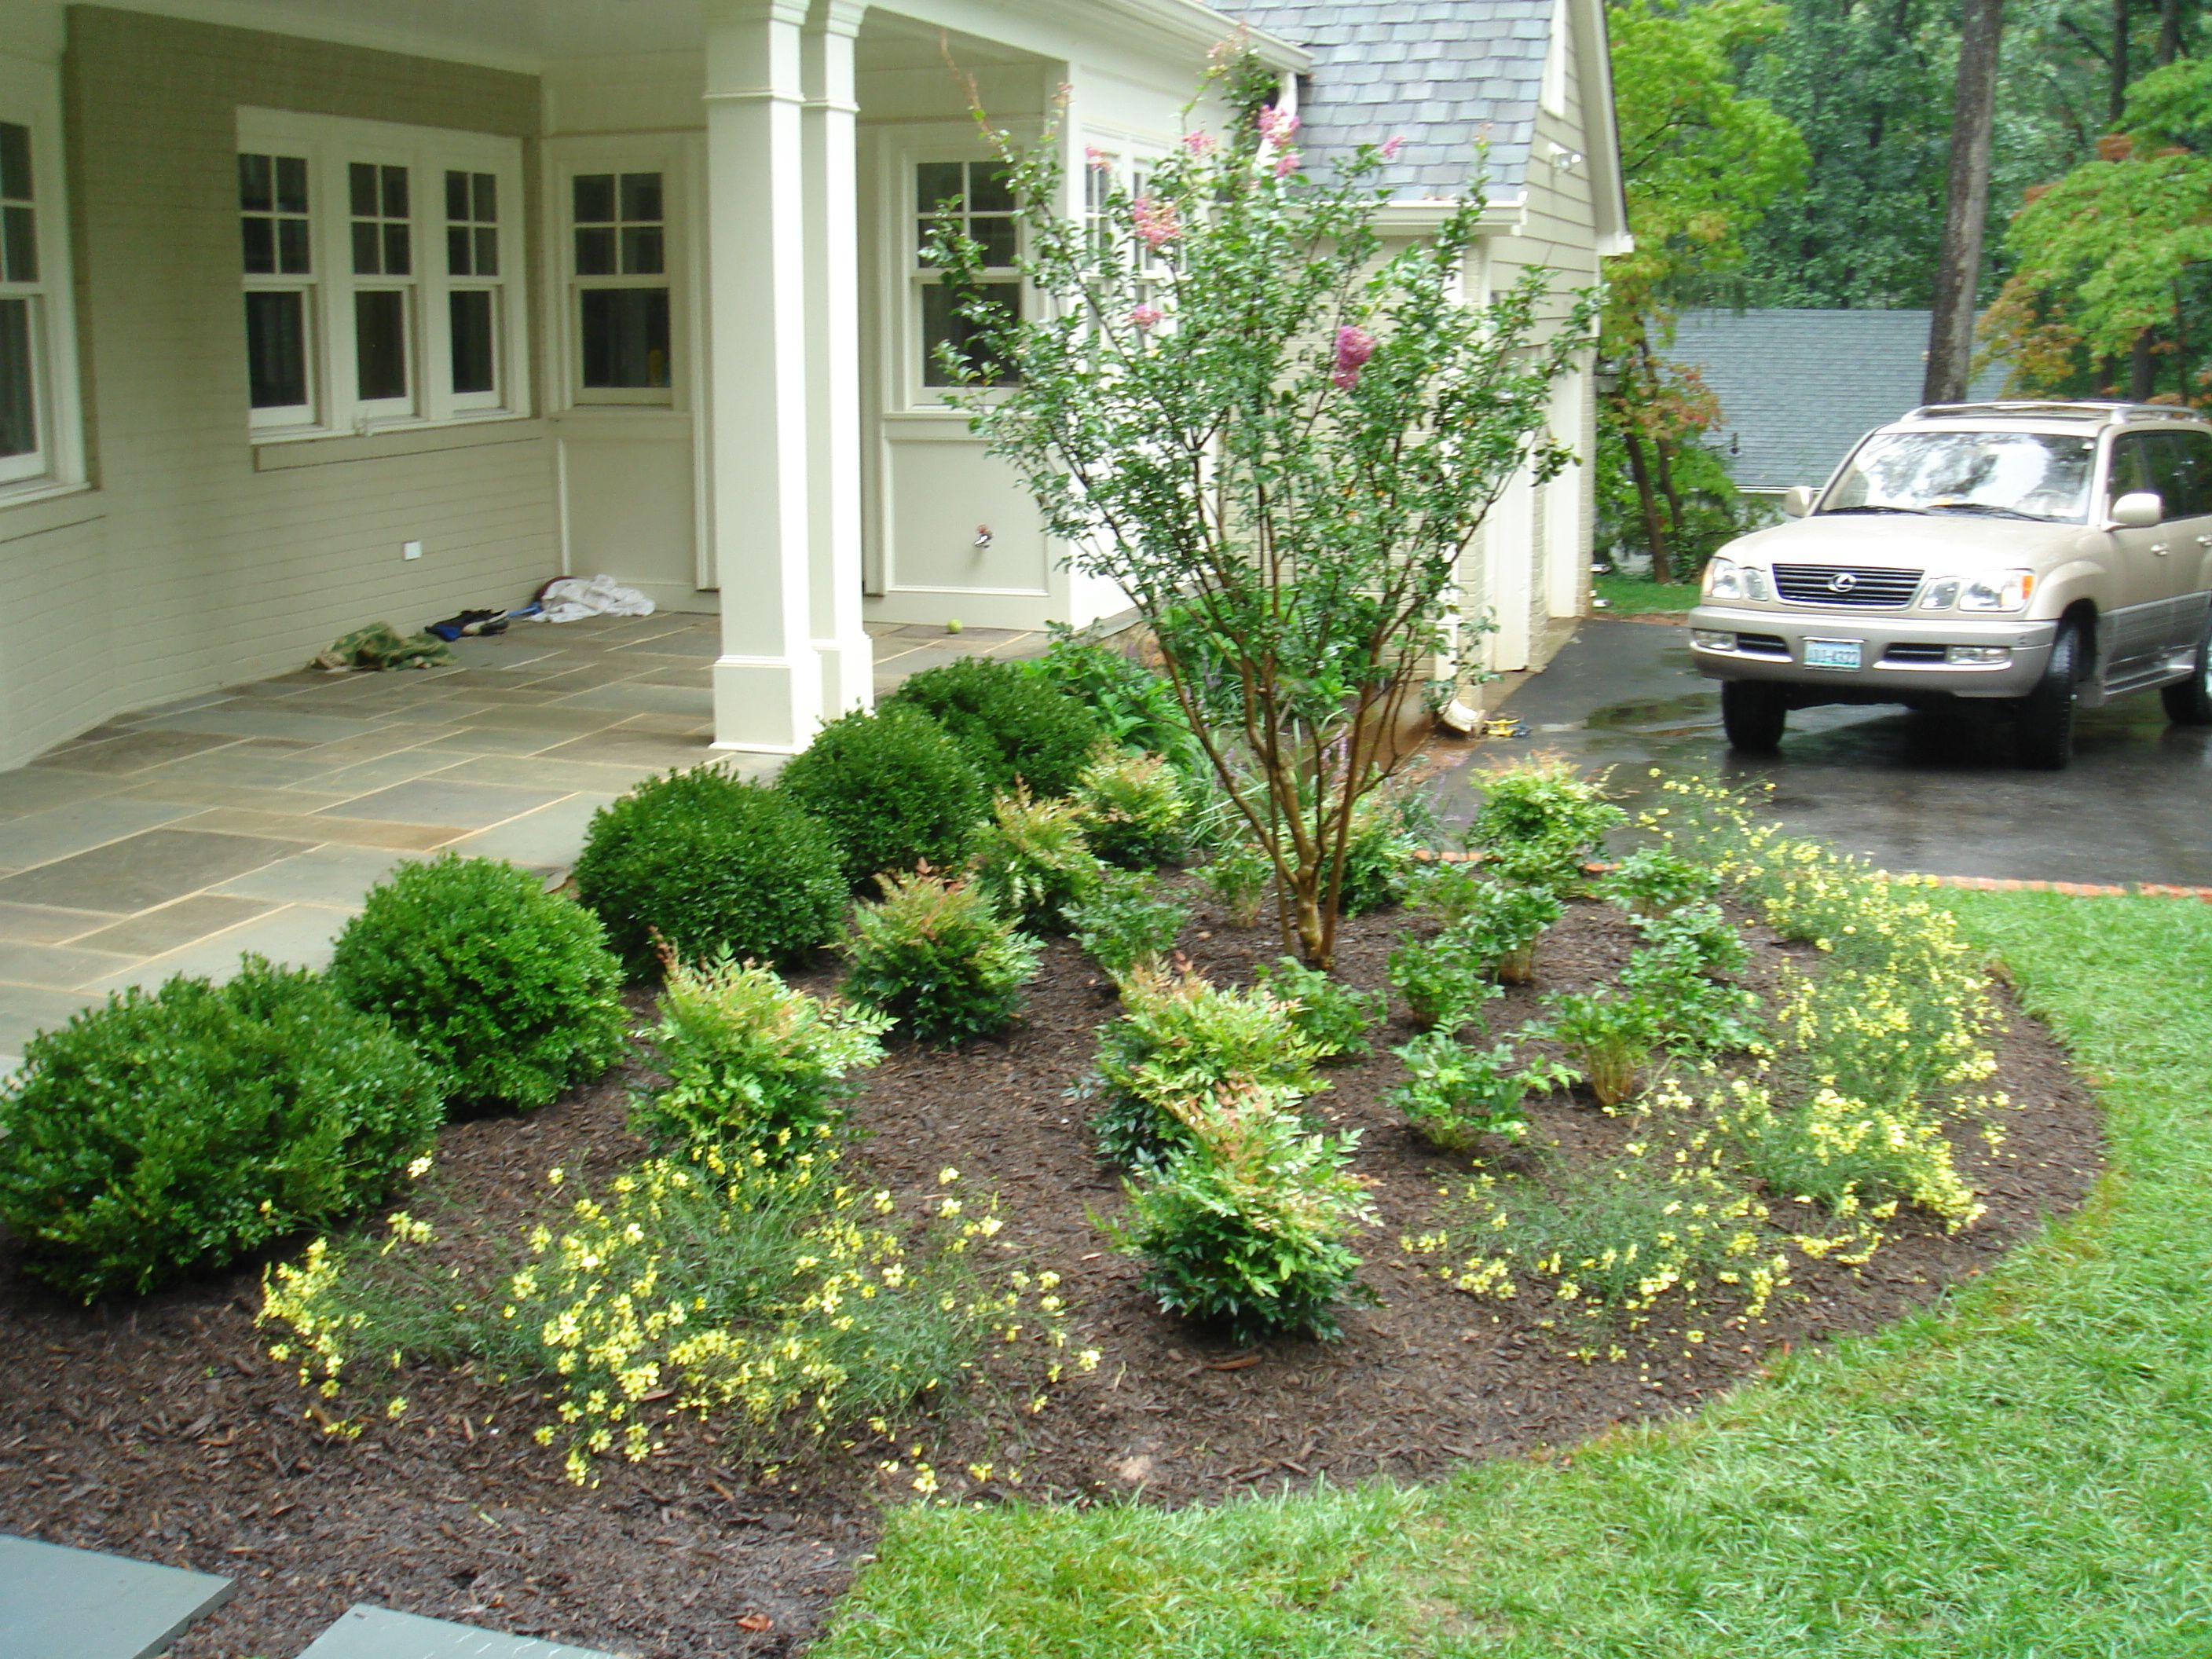 simple front yard landscaping ideas with trees on a budget love the little yellow flowers - Landscape Design Ideas For Front Yard